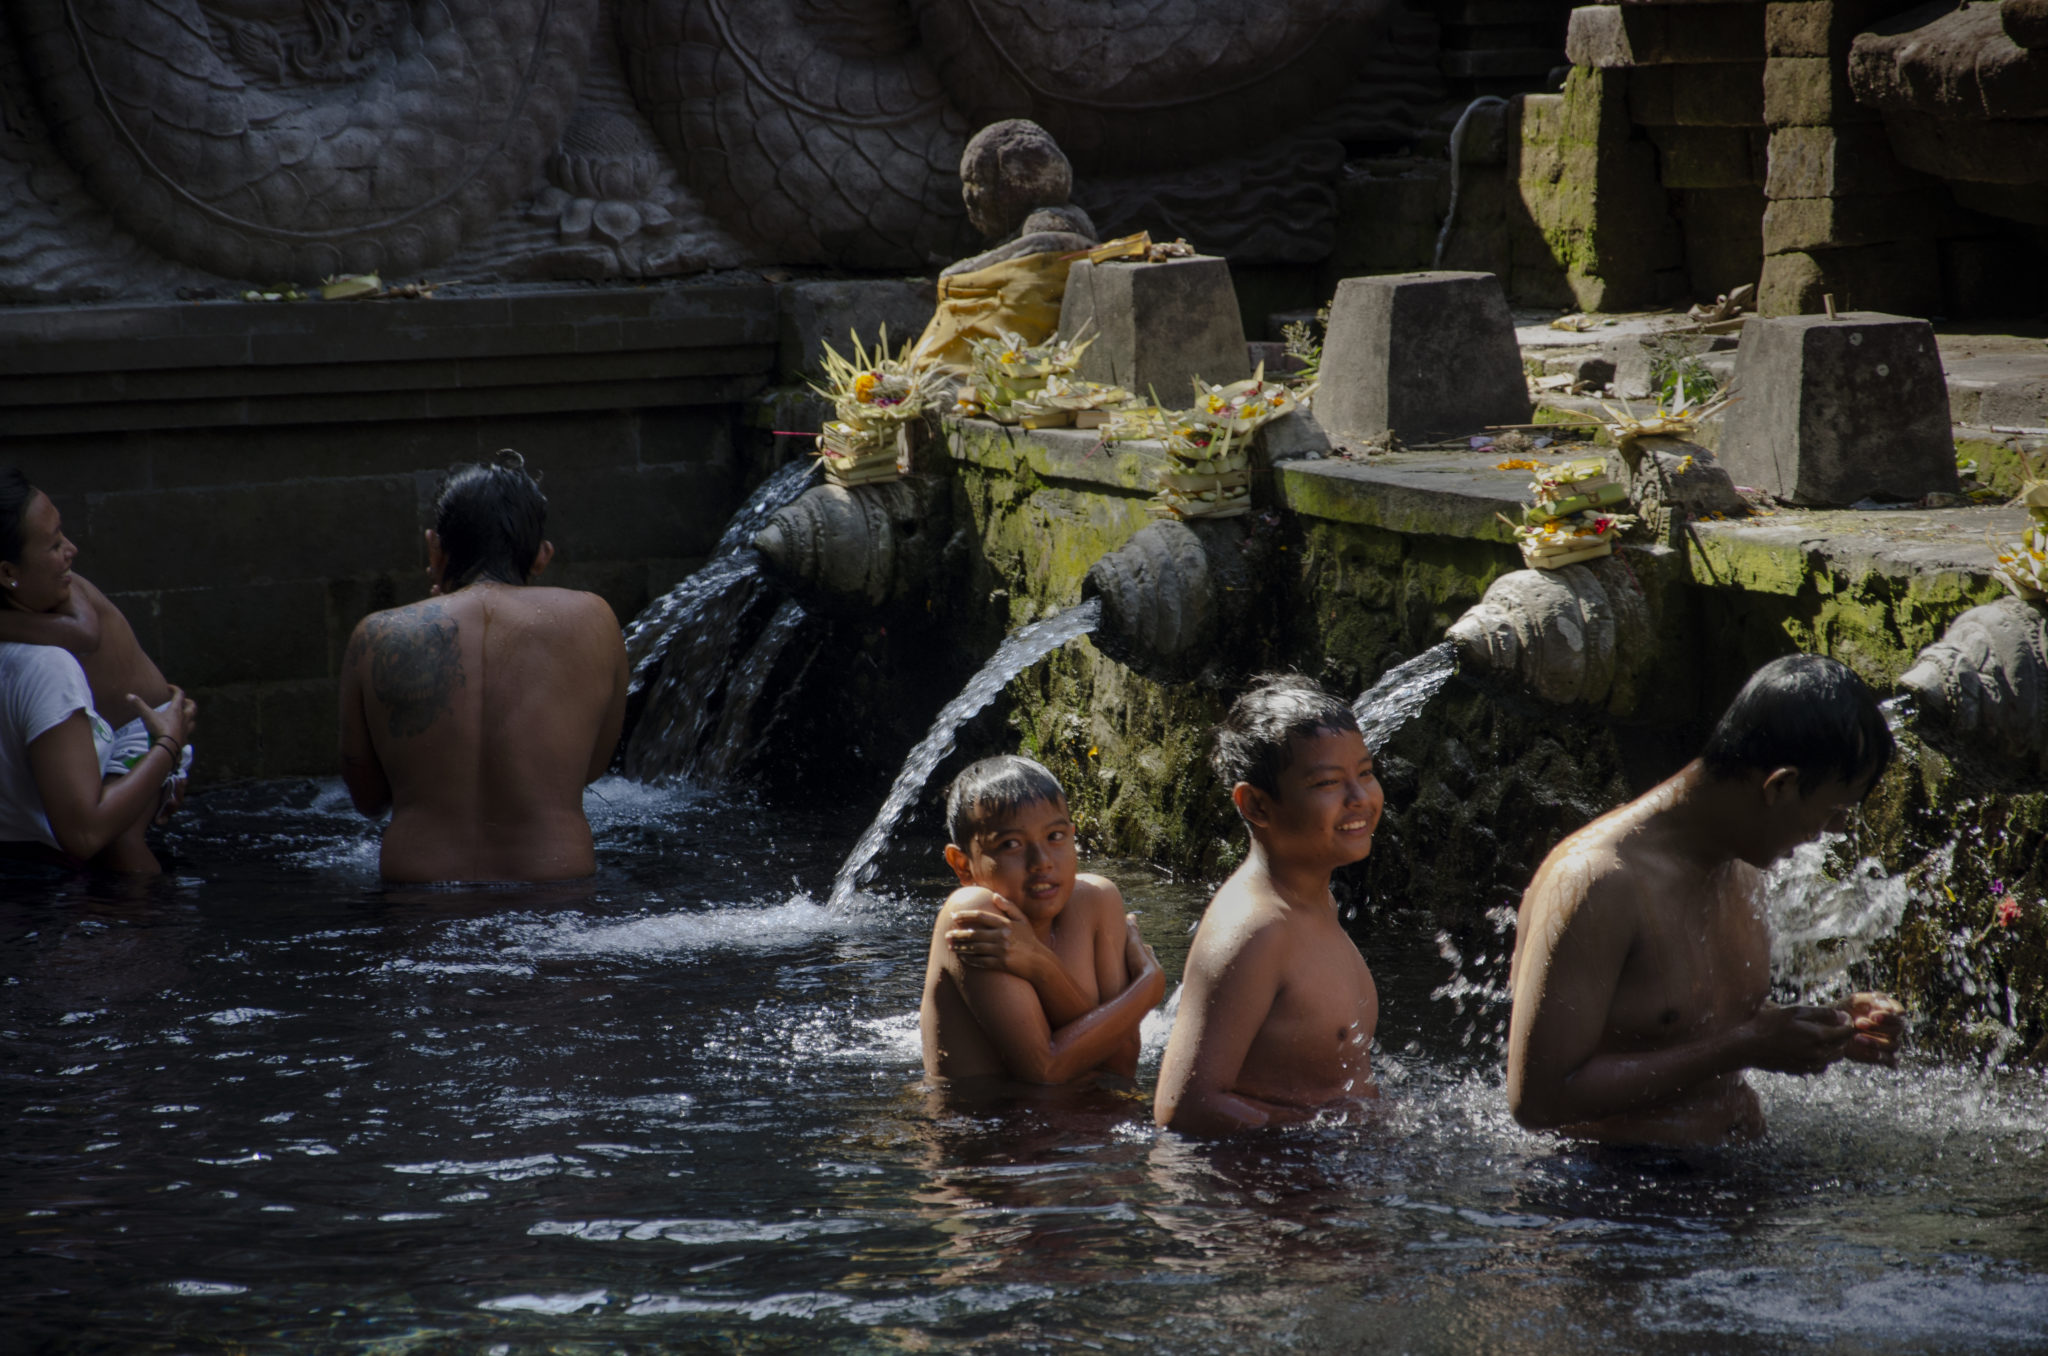 Indonesia-travel-guide-Holy-washing